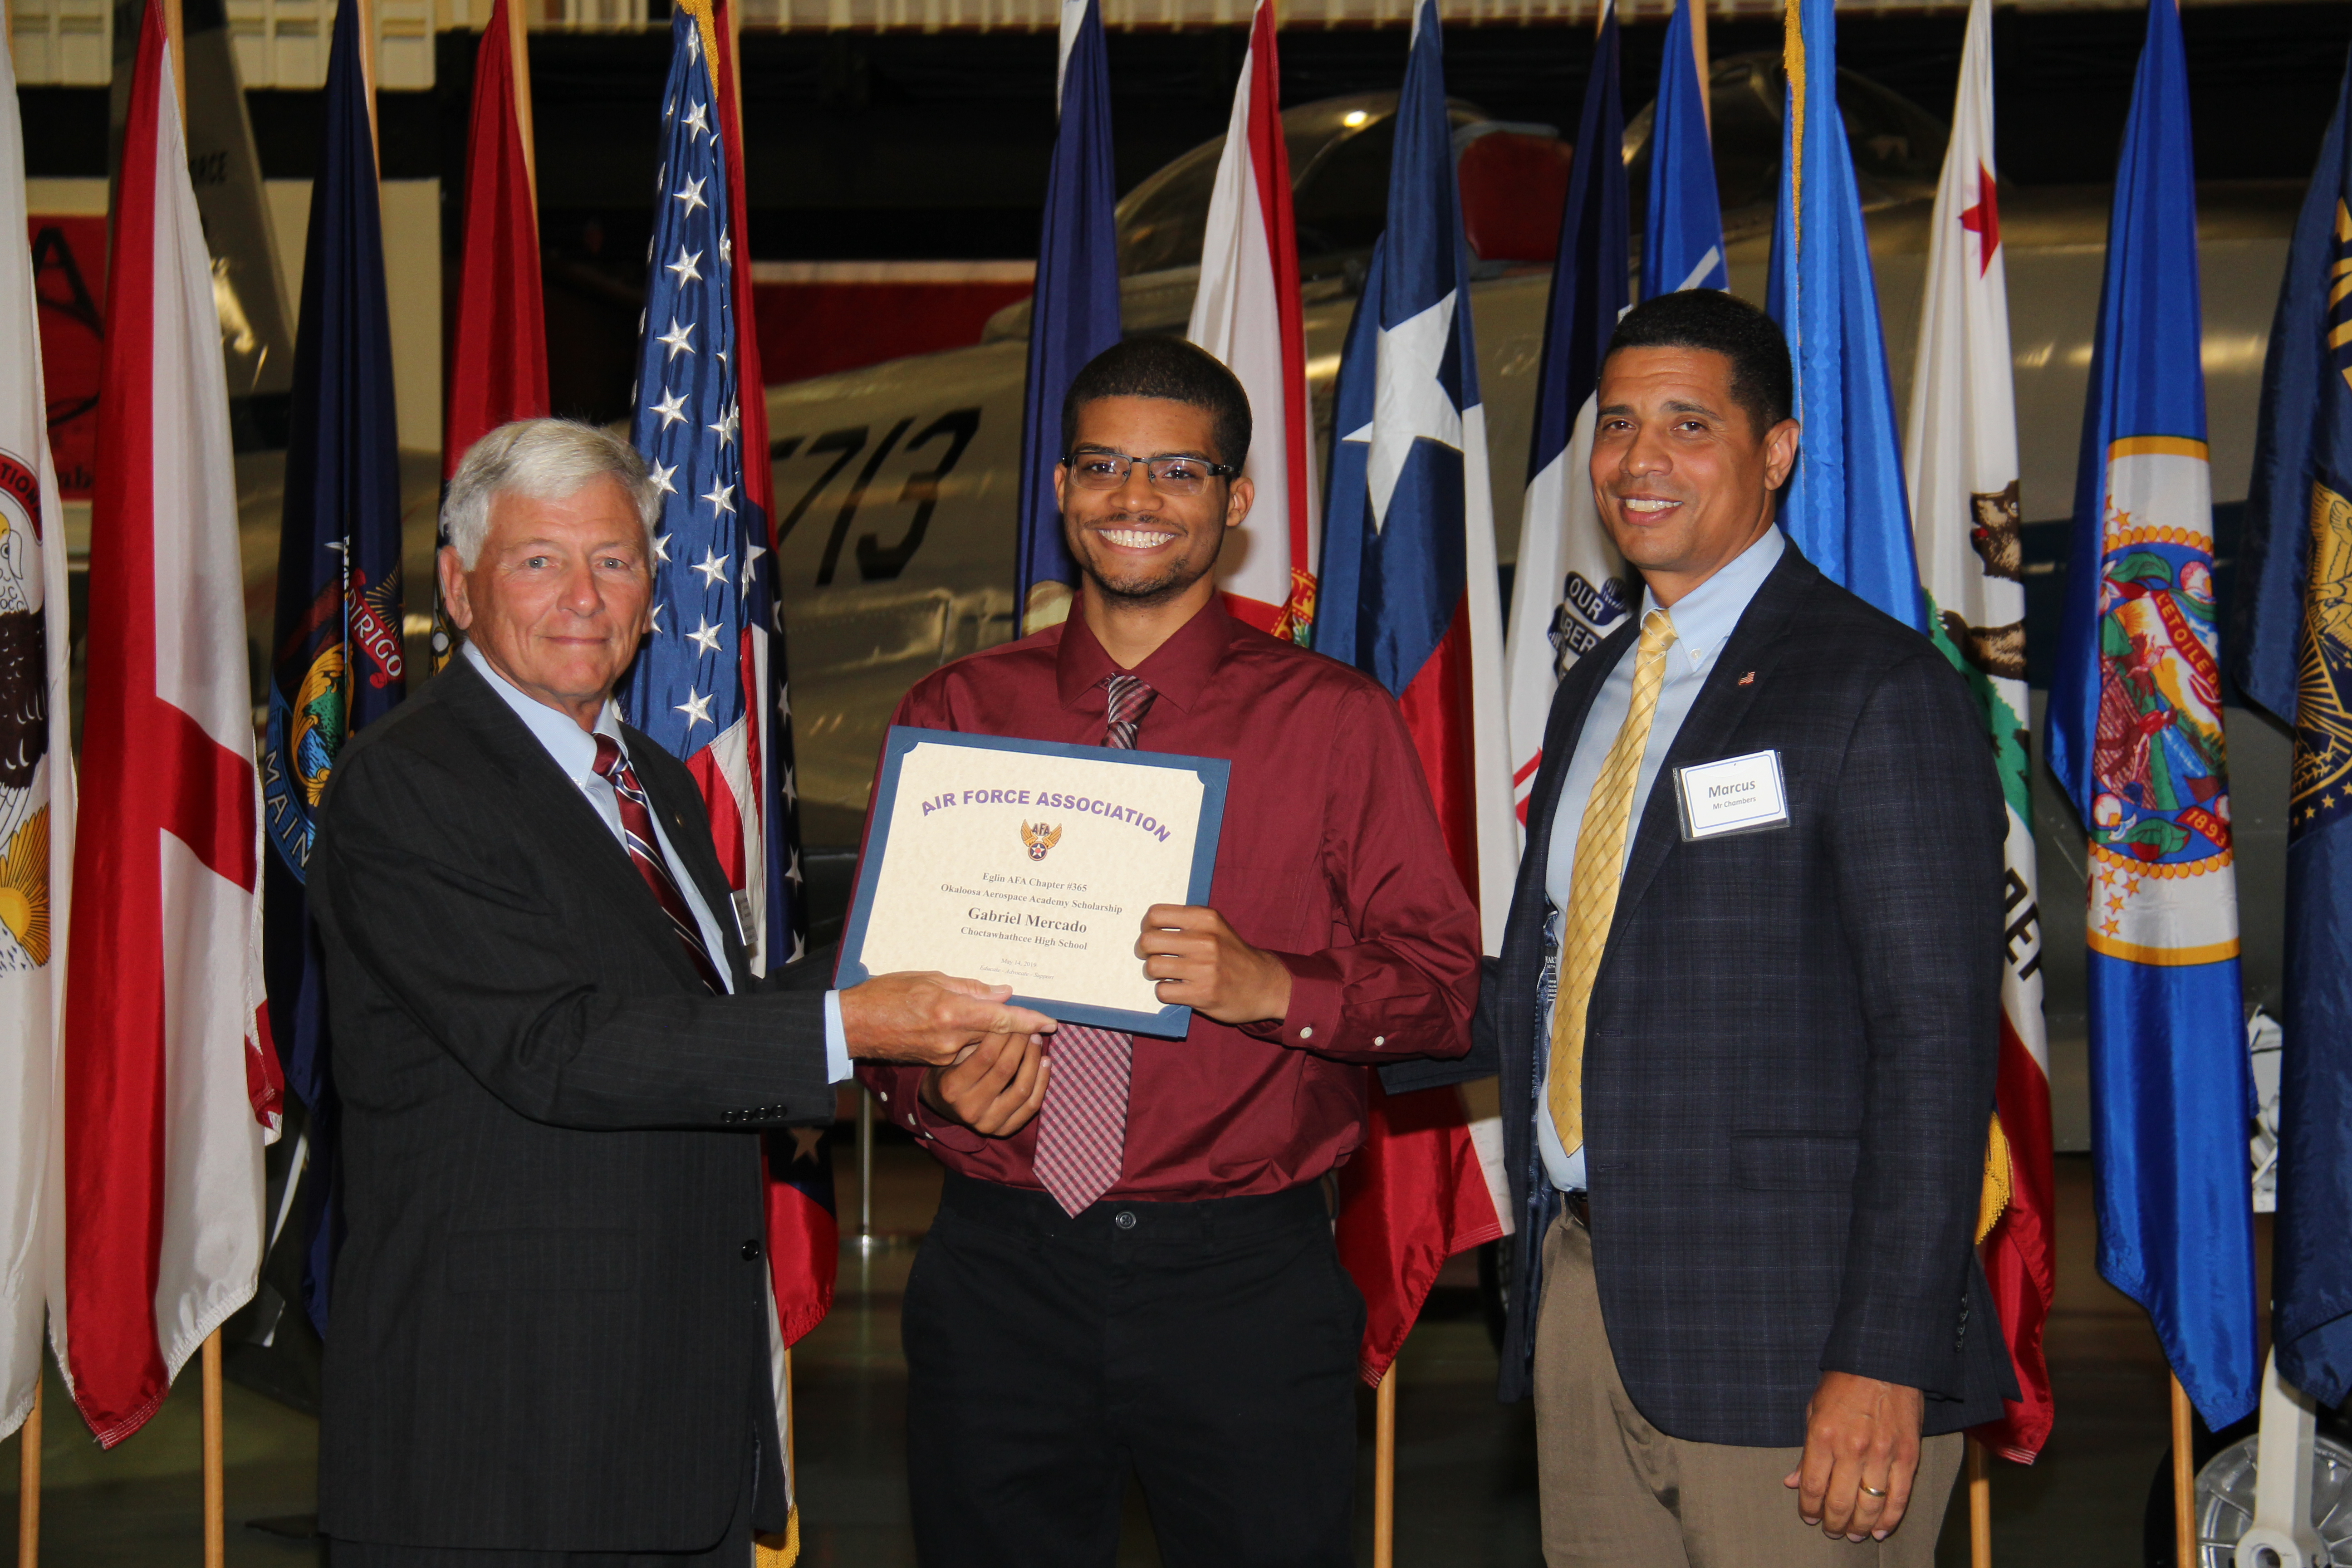 Gabriel Mercado, Embry Riddle Aeronautical University Worldwide, Okaloosa Aerospace Academy, Choctawhatchee HS campus